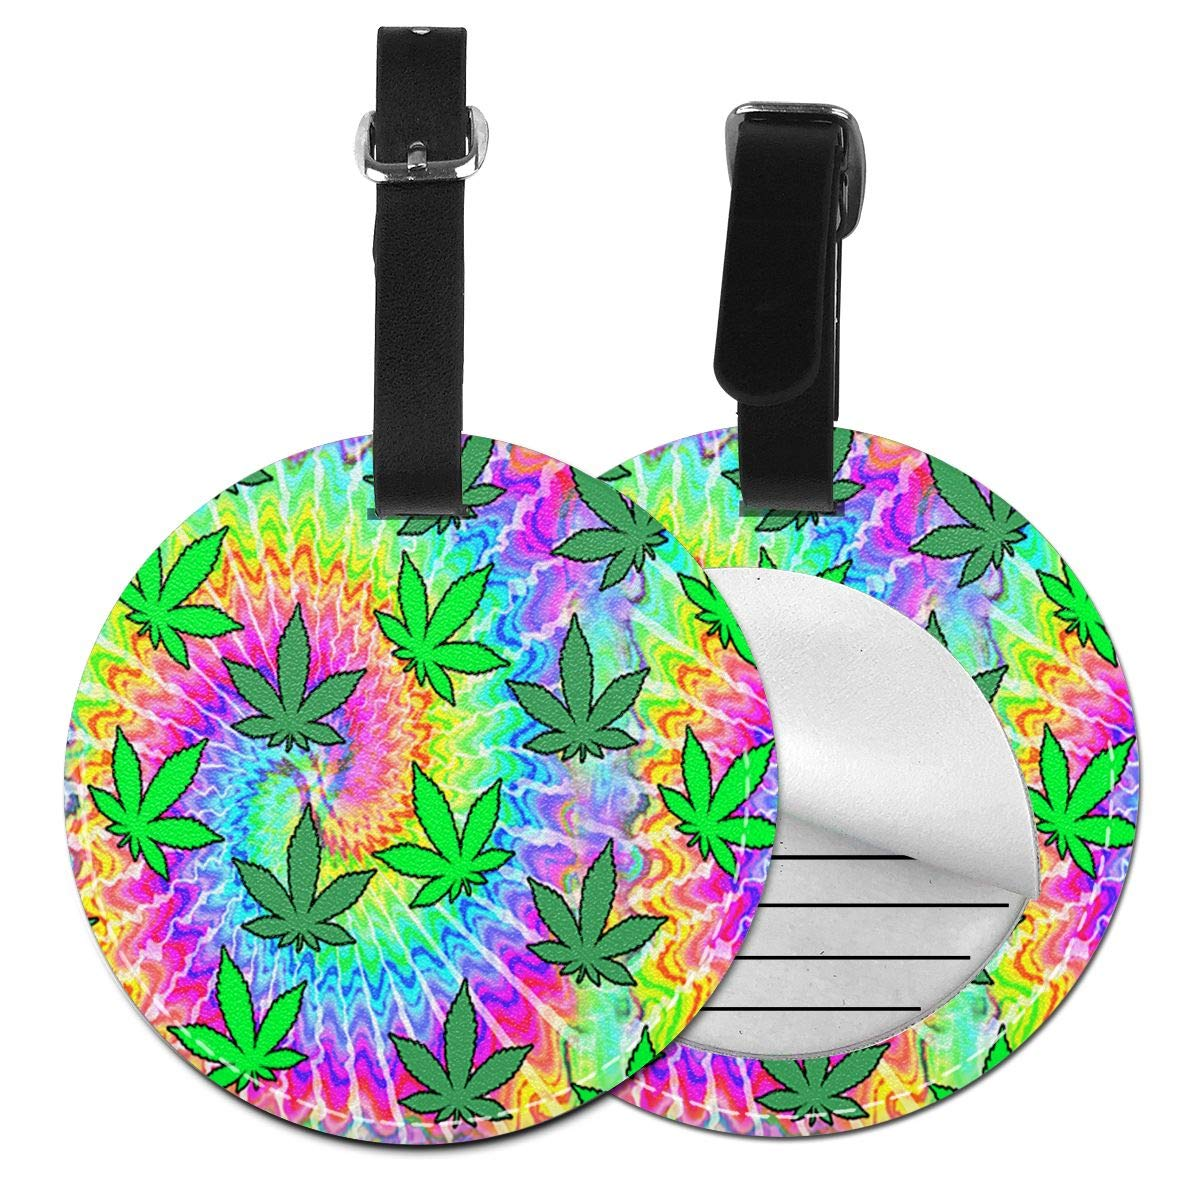 Free-2 Rspoonflower Weed Tie Dye Luggage Tag 3D Print Leather Travel Bag ID Card